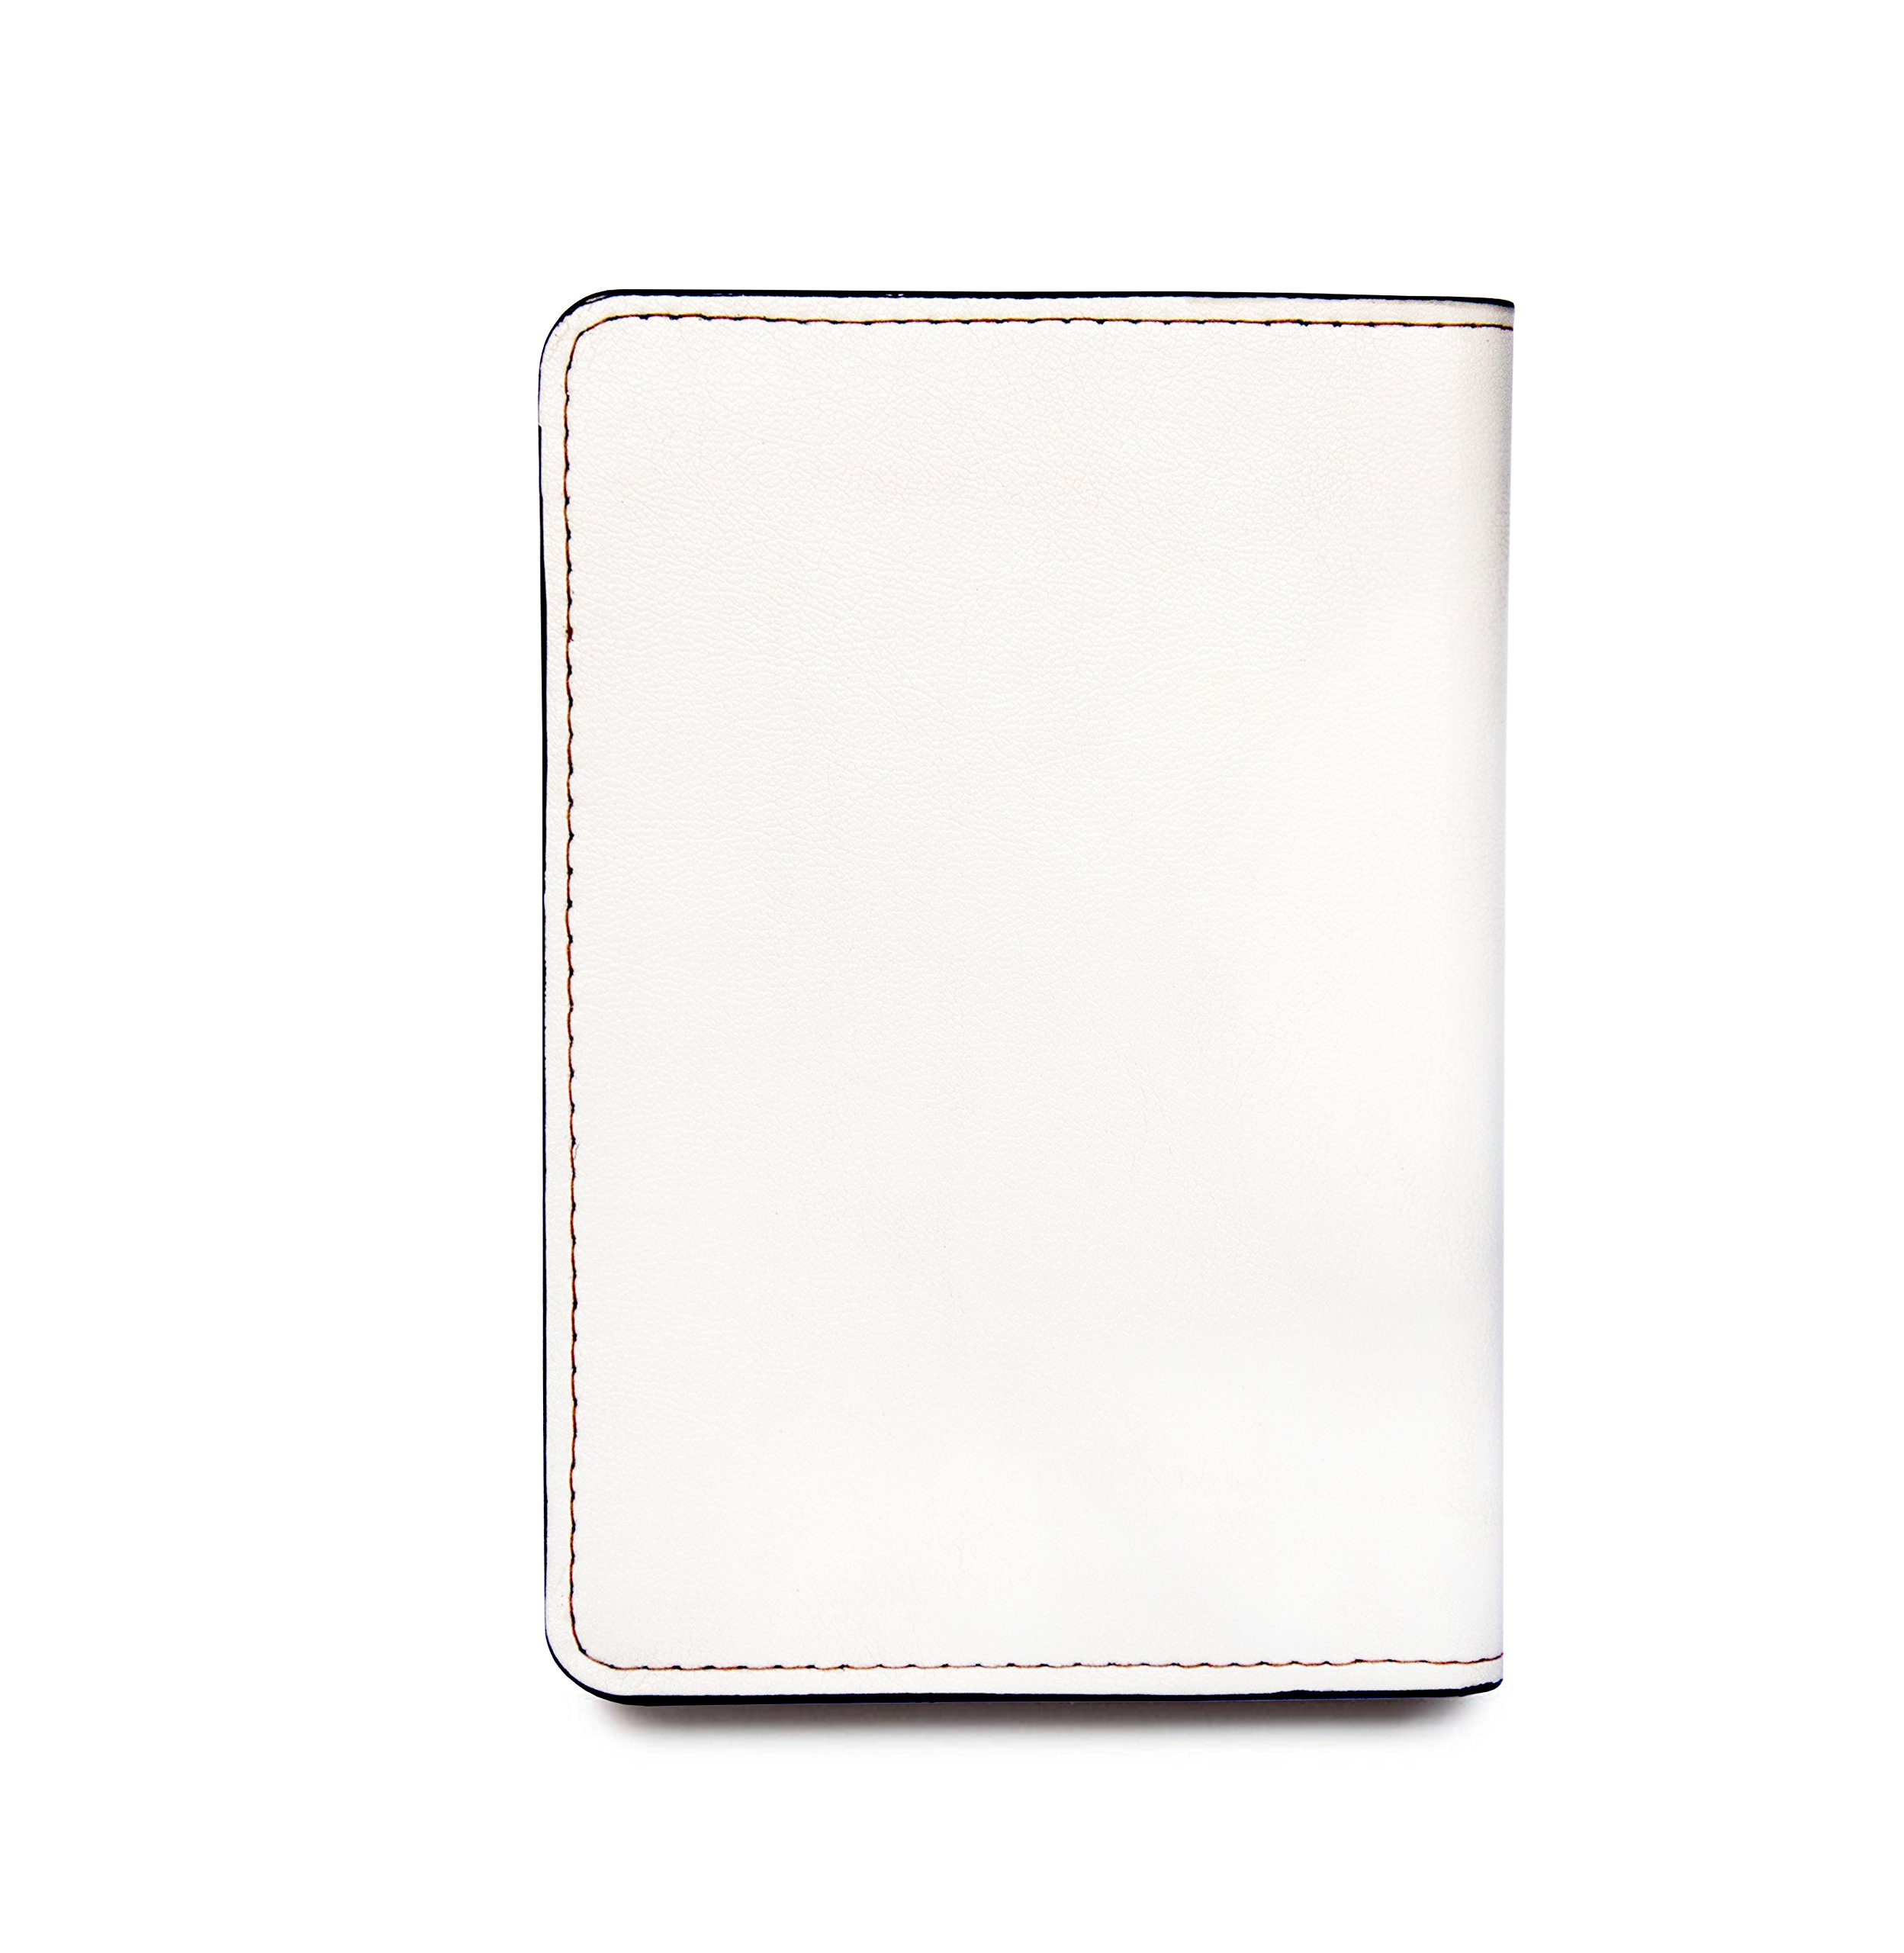 Mr And Mrs - Couple Passport Holder Personalized Passport Cover Set of 2 by With Love From Julie (Image #6)